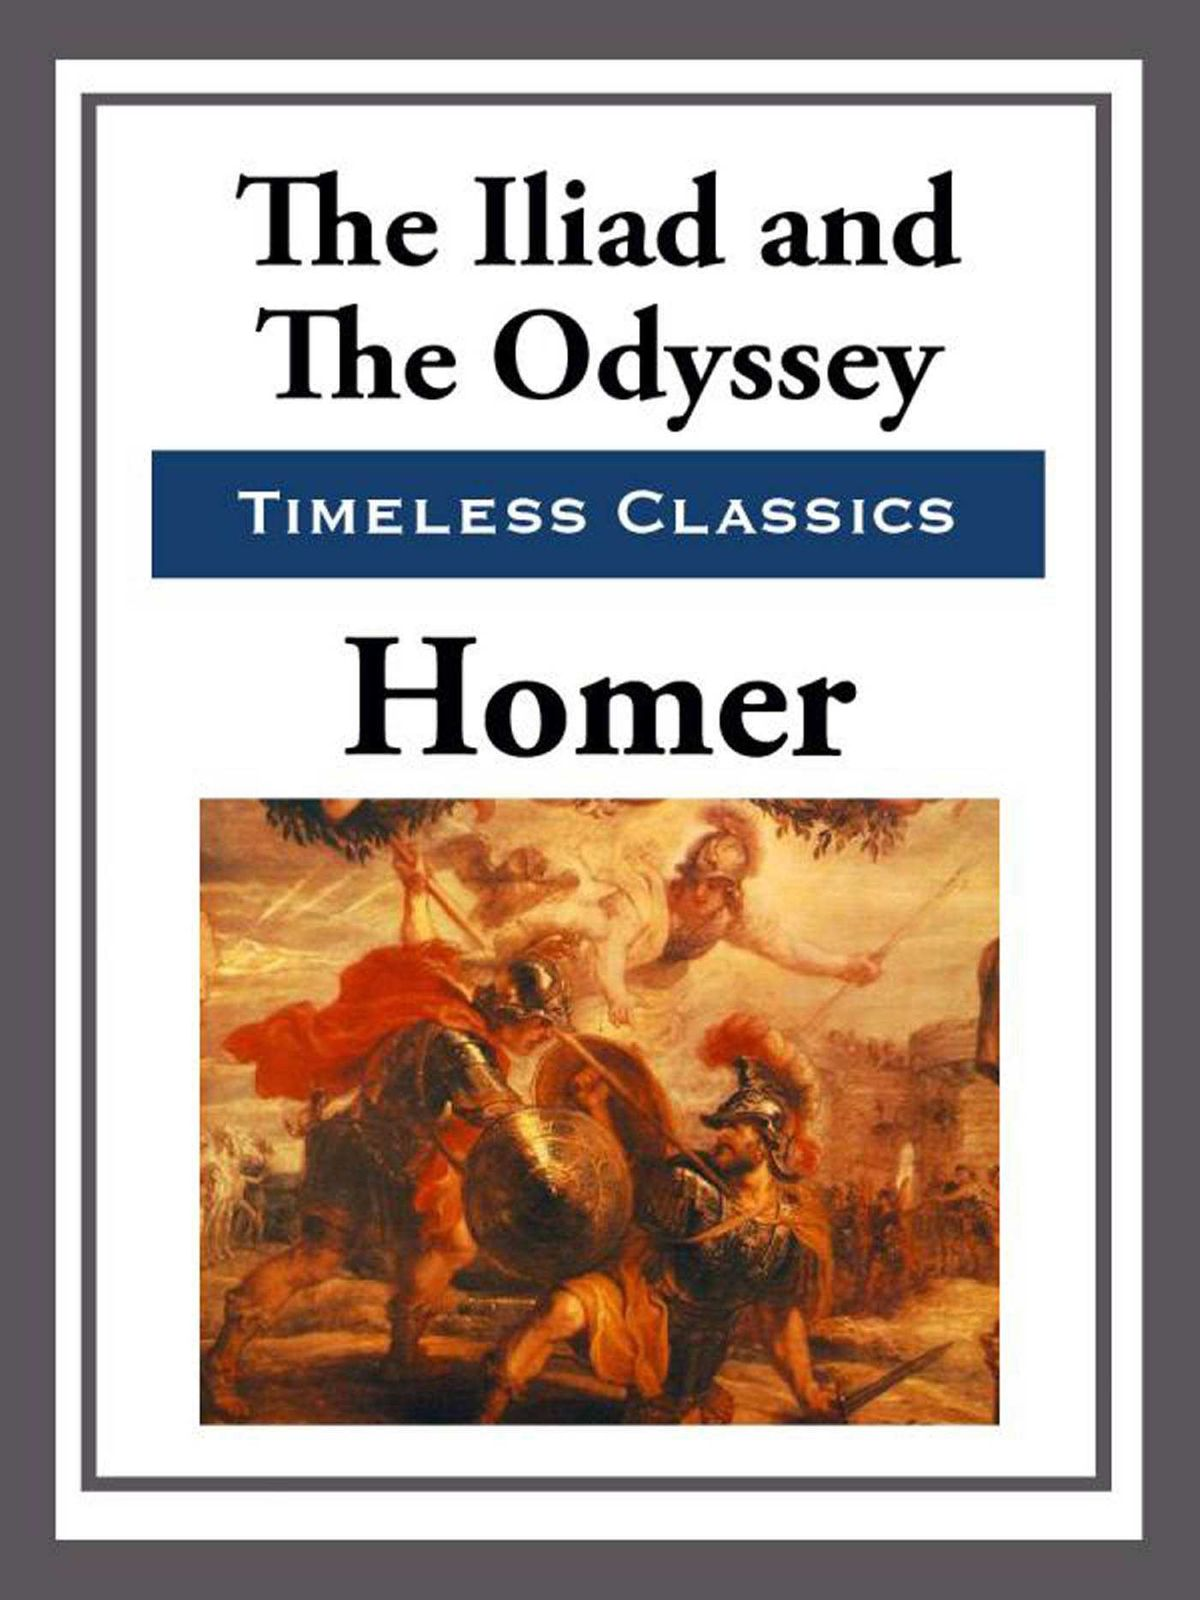 an analysis of honor and loyalty in the odyssey by homer Mortality is the burning question for the heroes of homer's iliad and odyssey, and for achilles and odysseus in particular the human condition of mortality, with all its ordeals, defines heroic life itself.